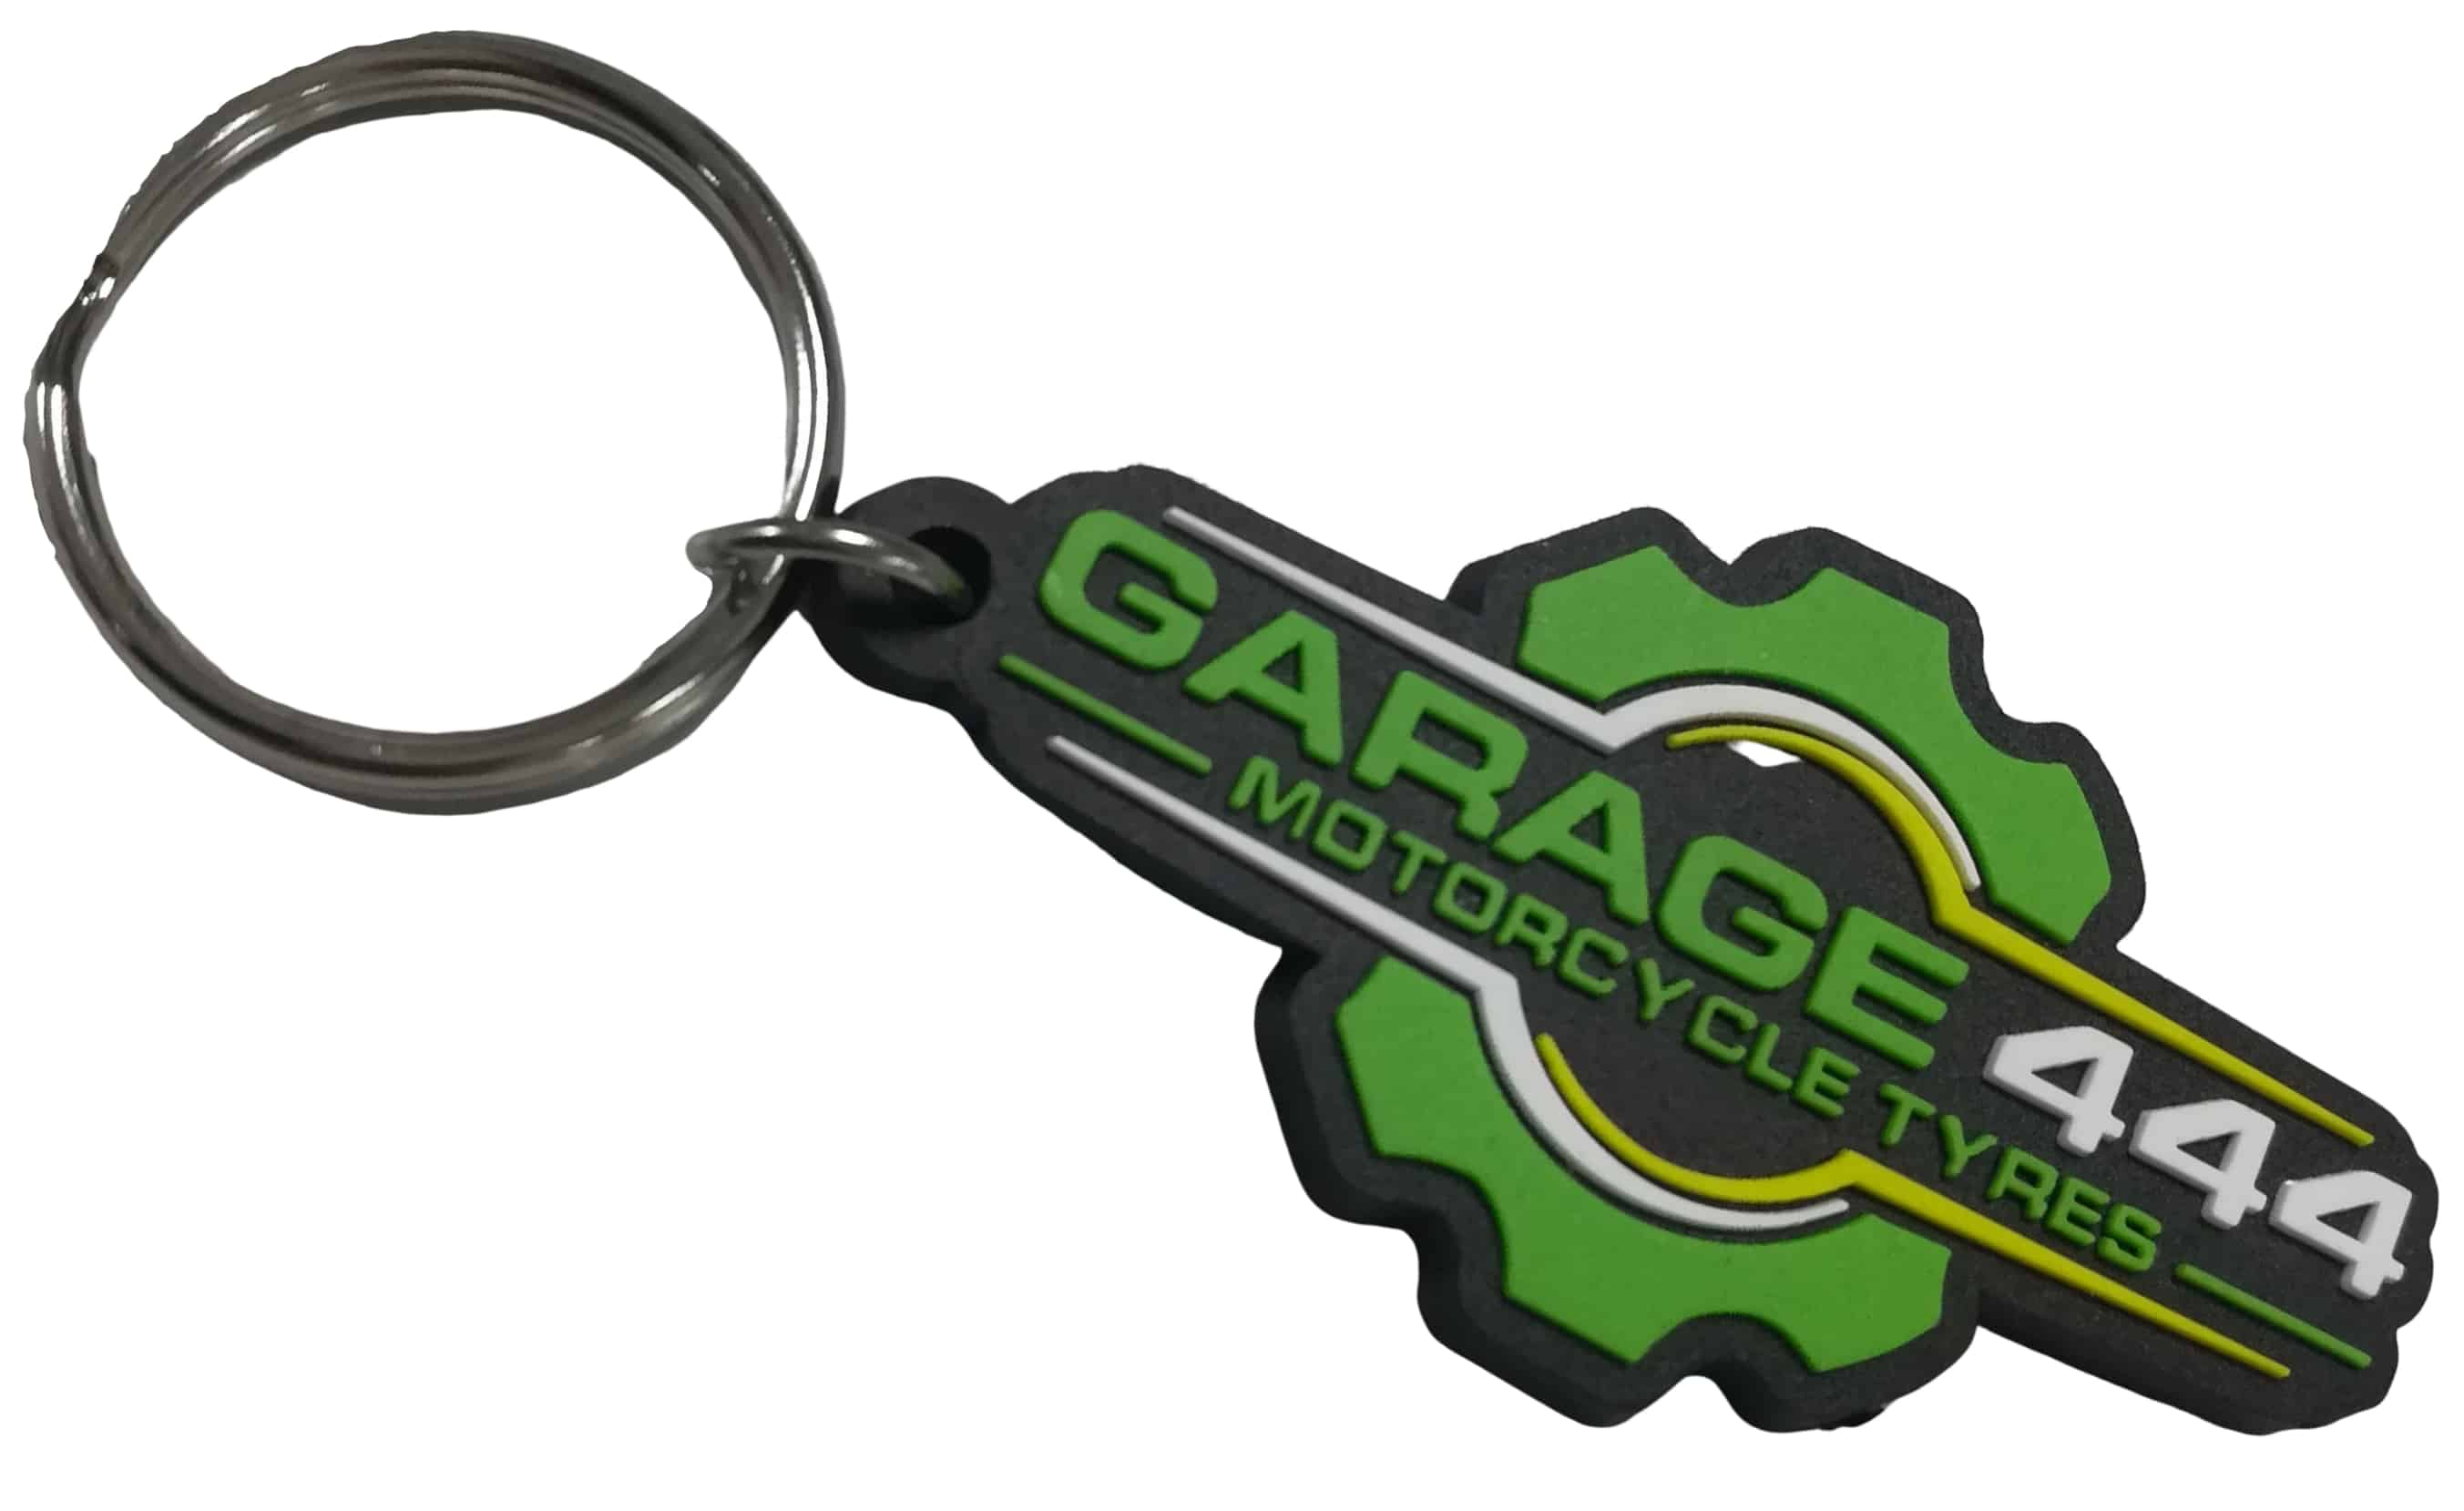 Custom rubber keychains for a motorcycle tyre shop with 3 colour logo in 2D on the front.